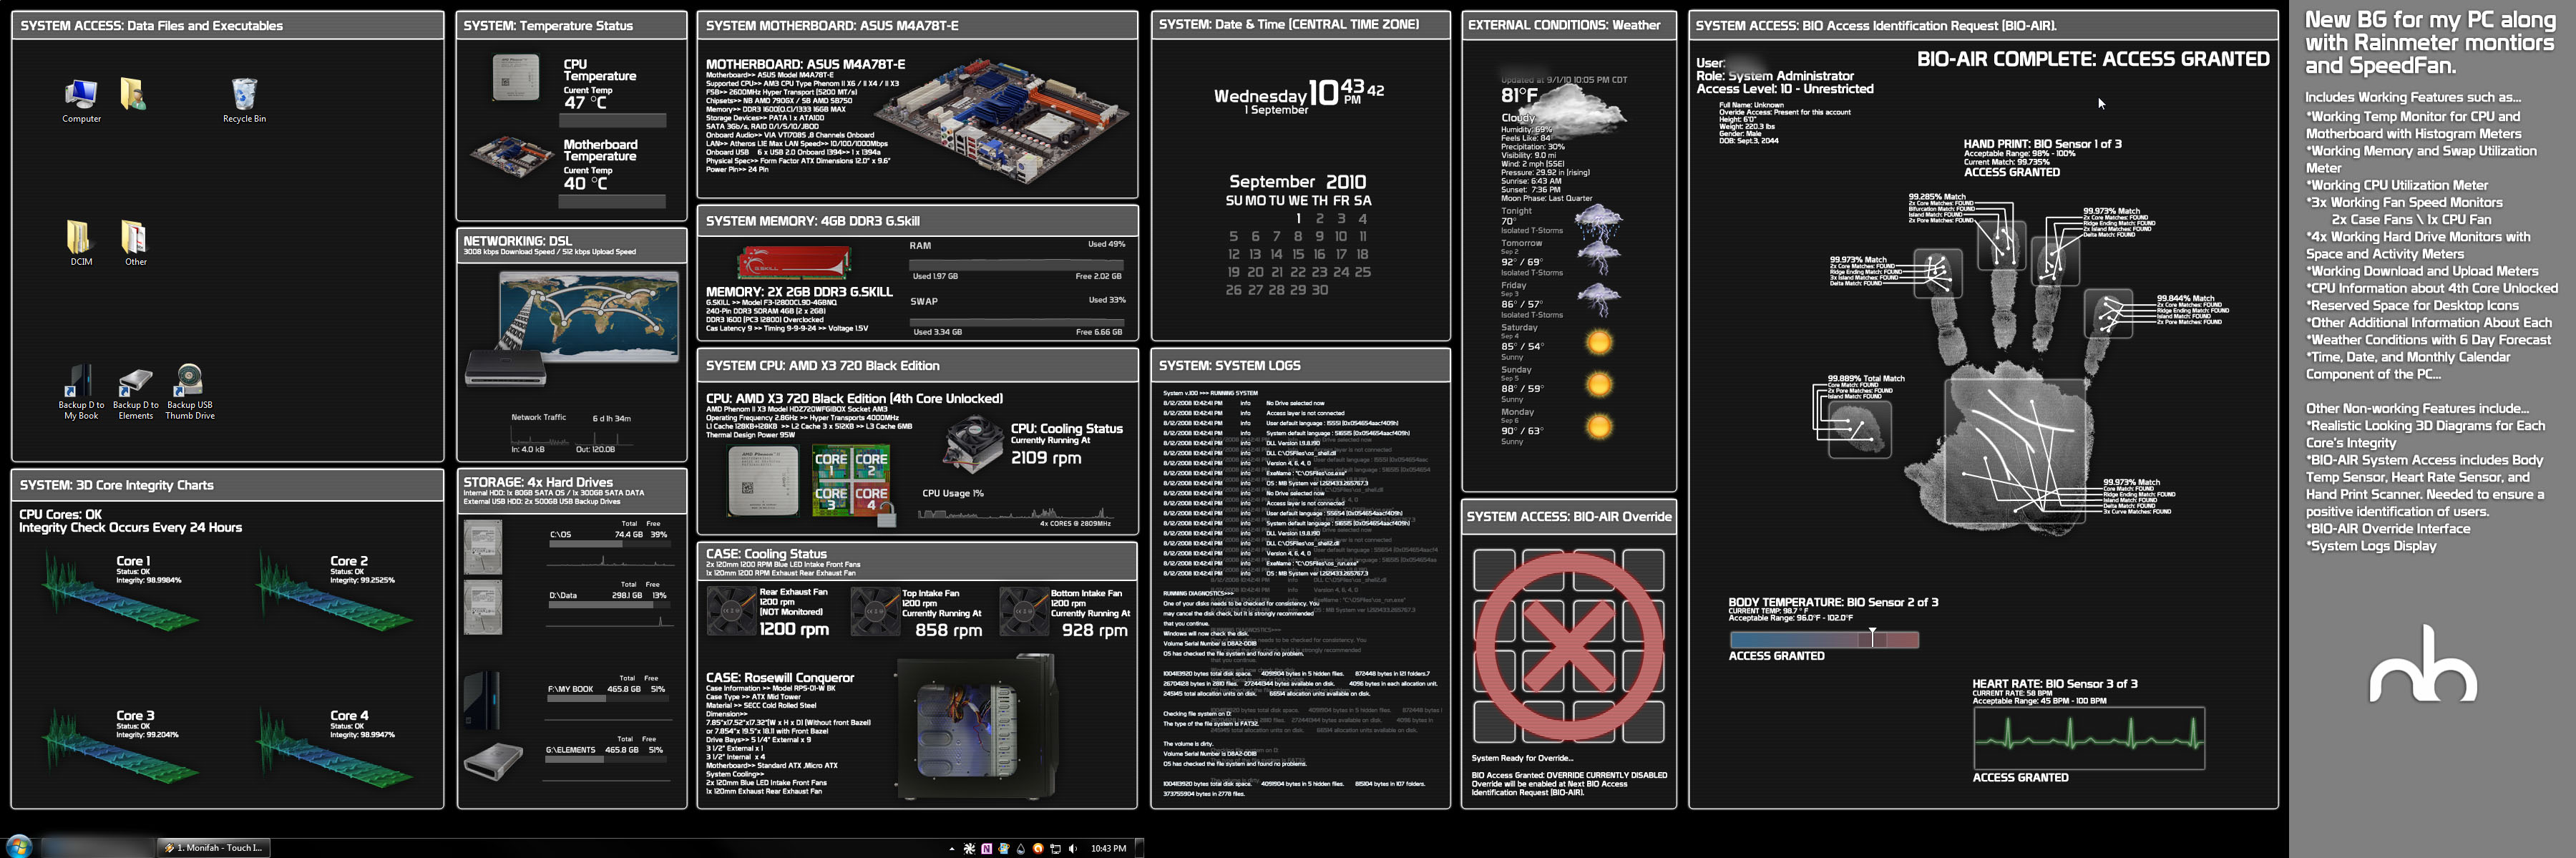 Realistic System Monitor BG v3 by mbgd